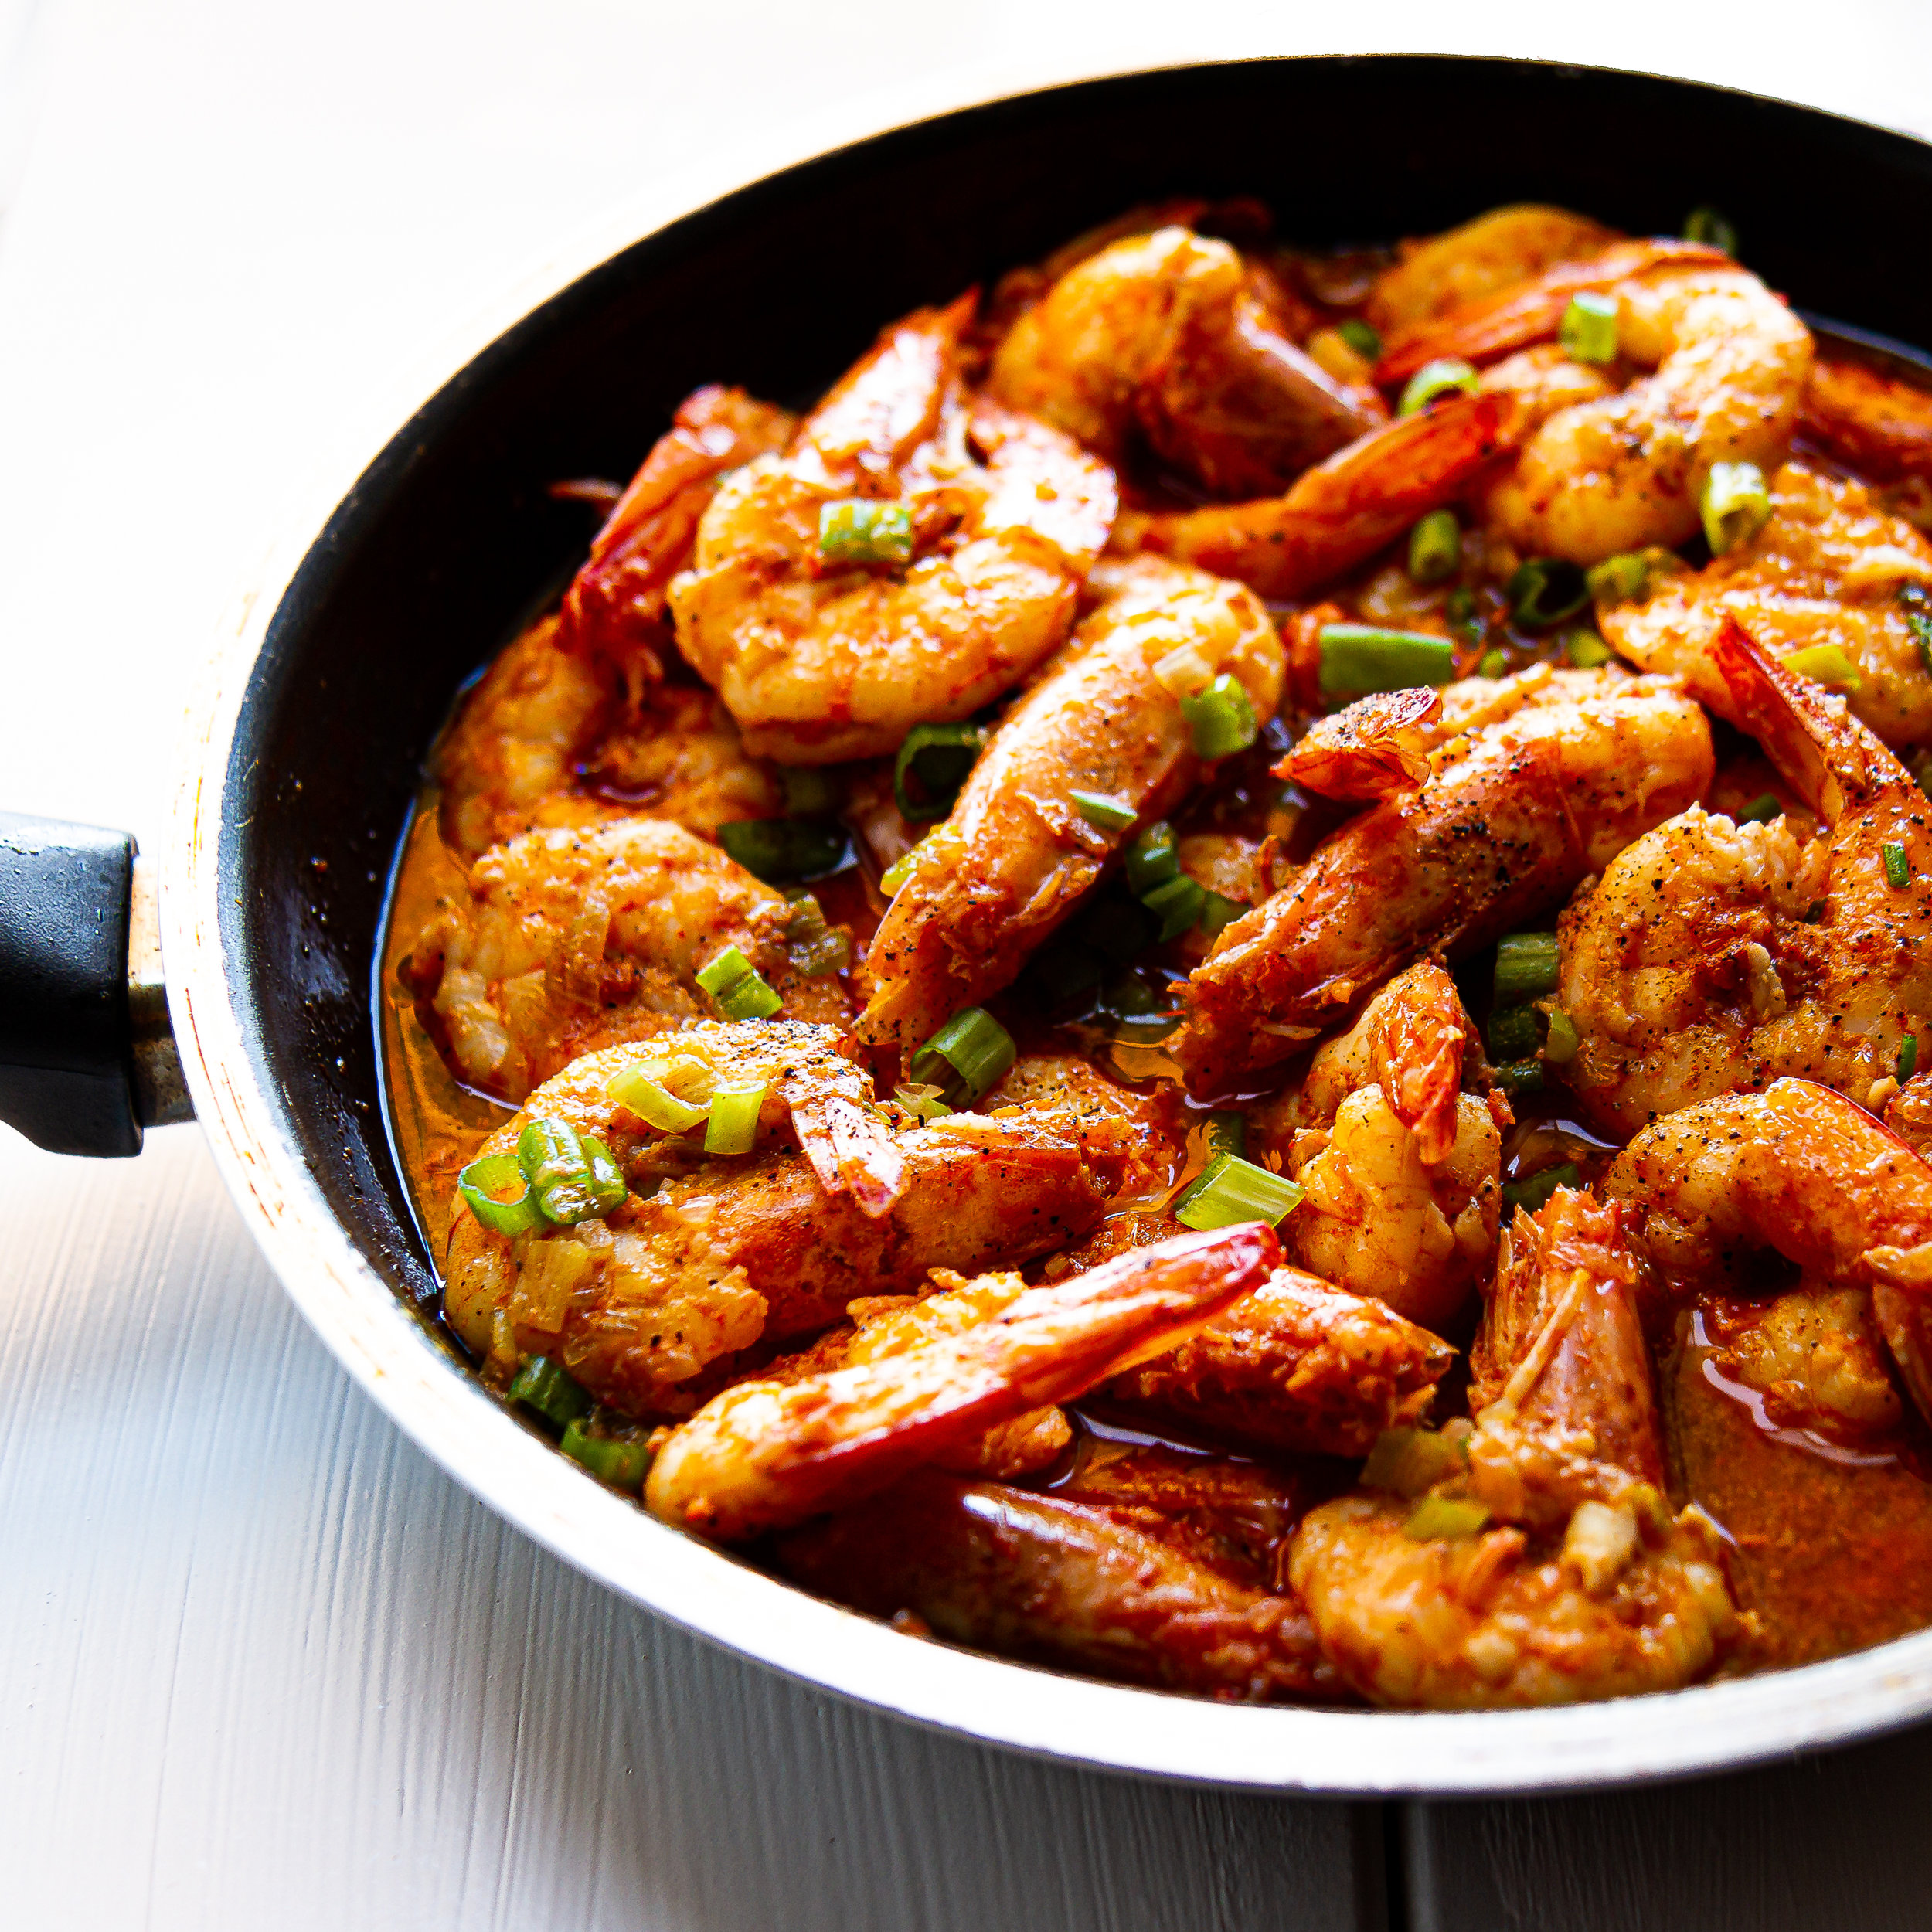 Vietnamese Sauteed Prawns in Roe / Tomalley Sauce (Tom Kho Tau Gach Do)